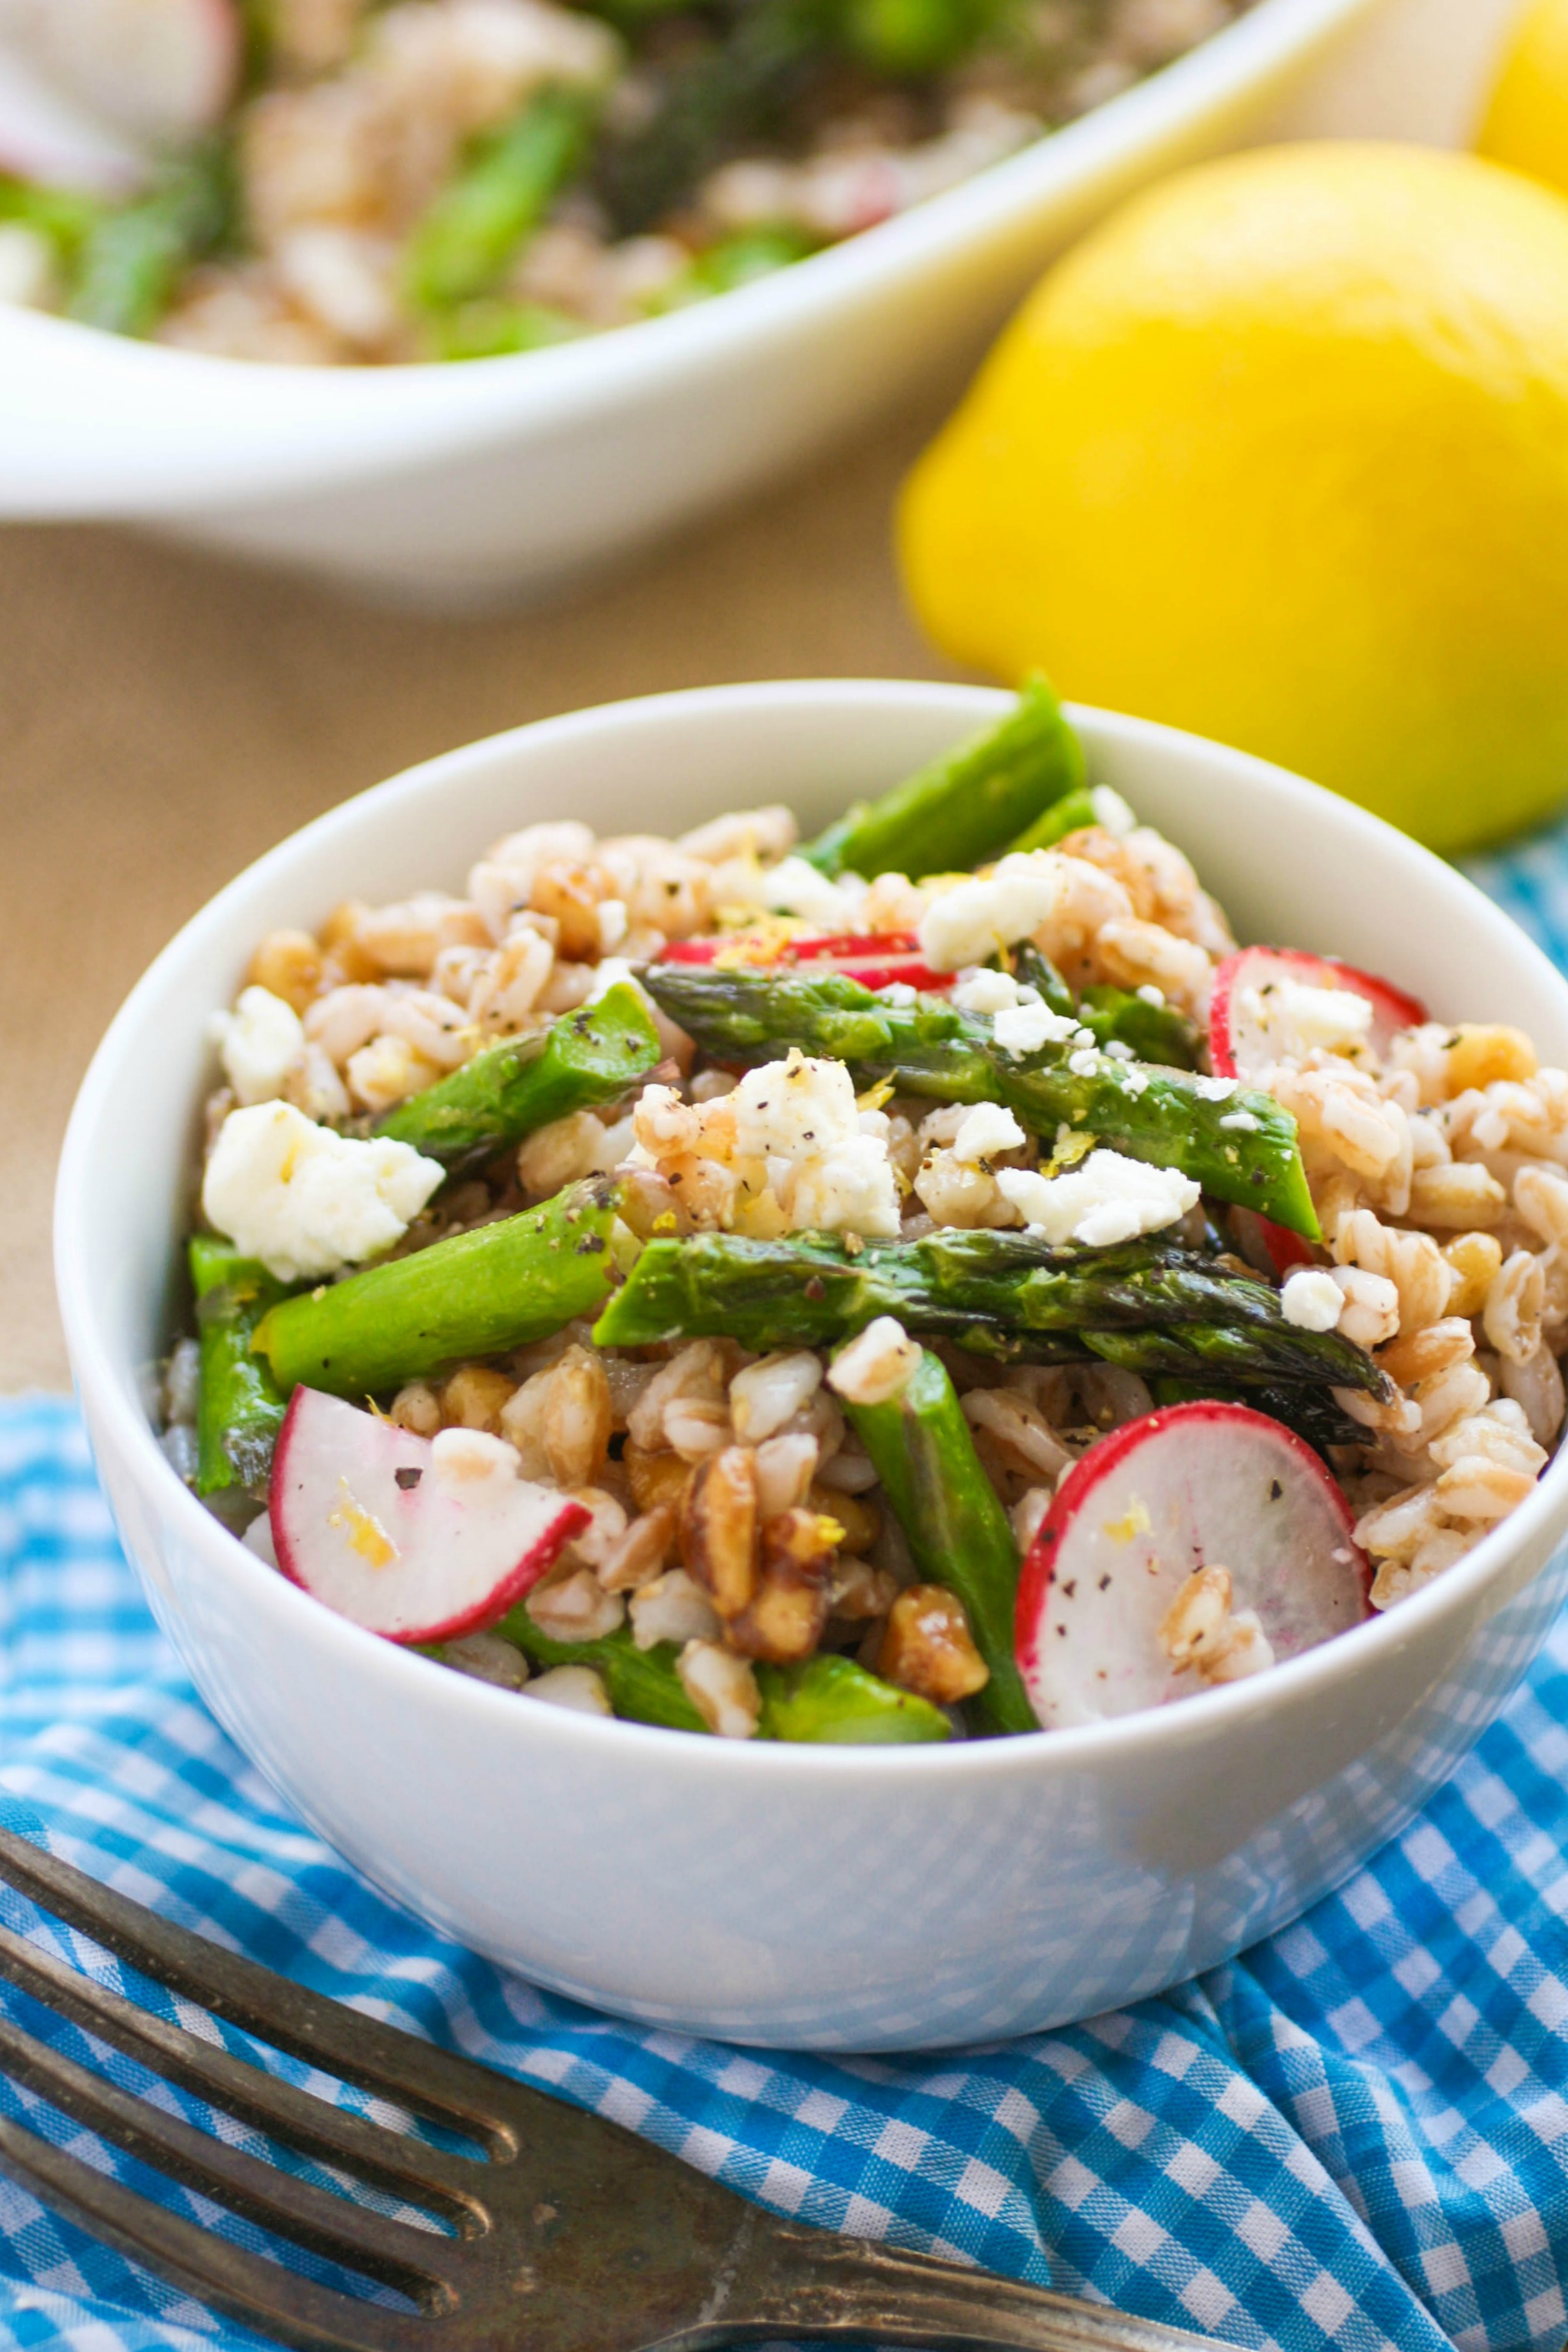 Farro Salad with Asparagus, Radishes & Lemon Vinaigrette is a fabulous spring dish! You'll love the bright colors and flavors!